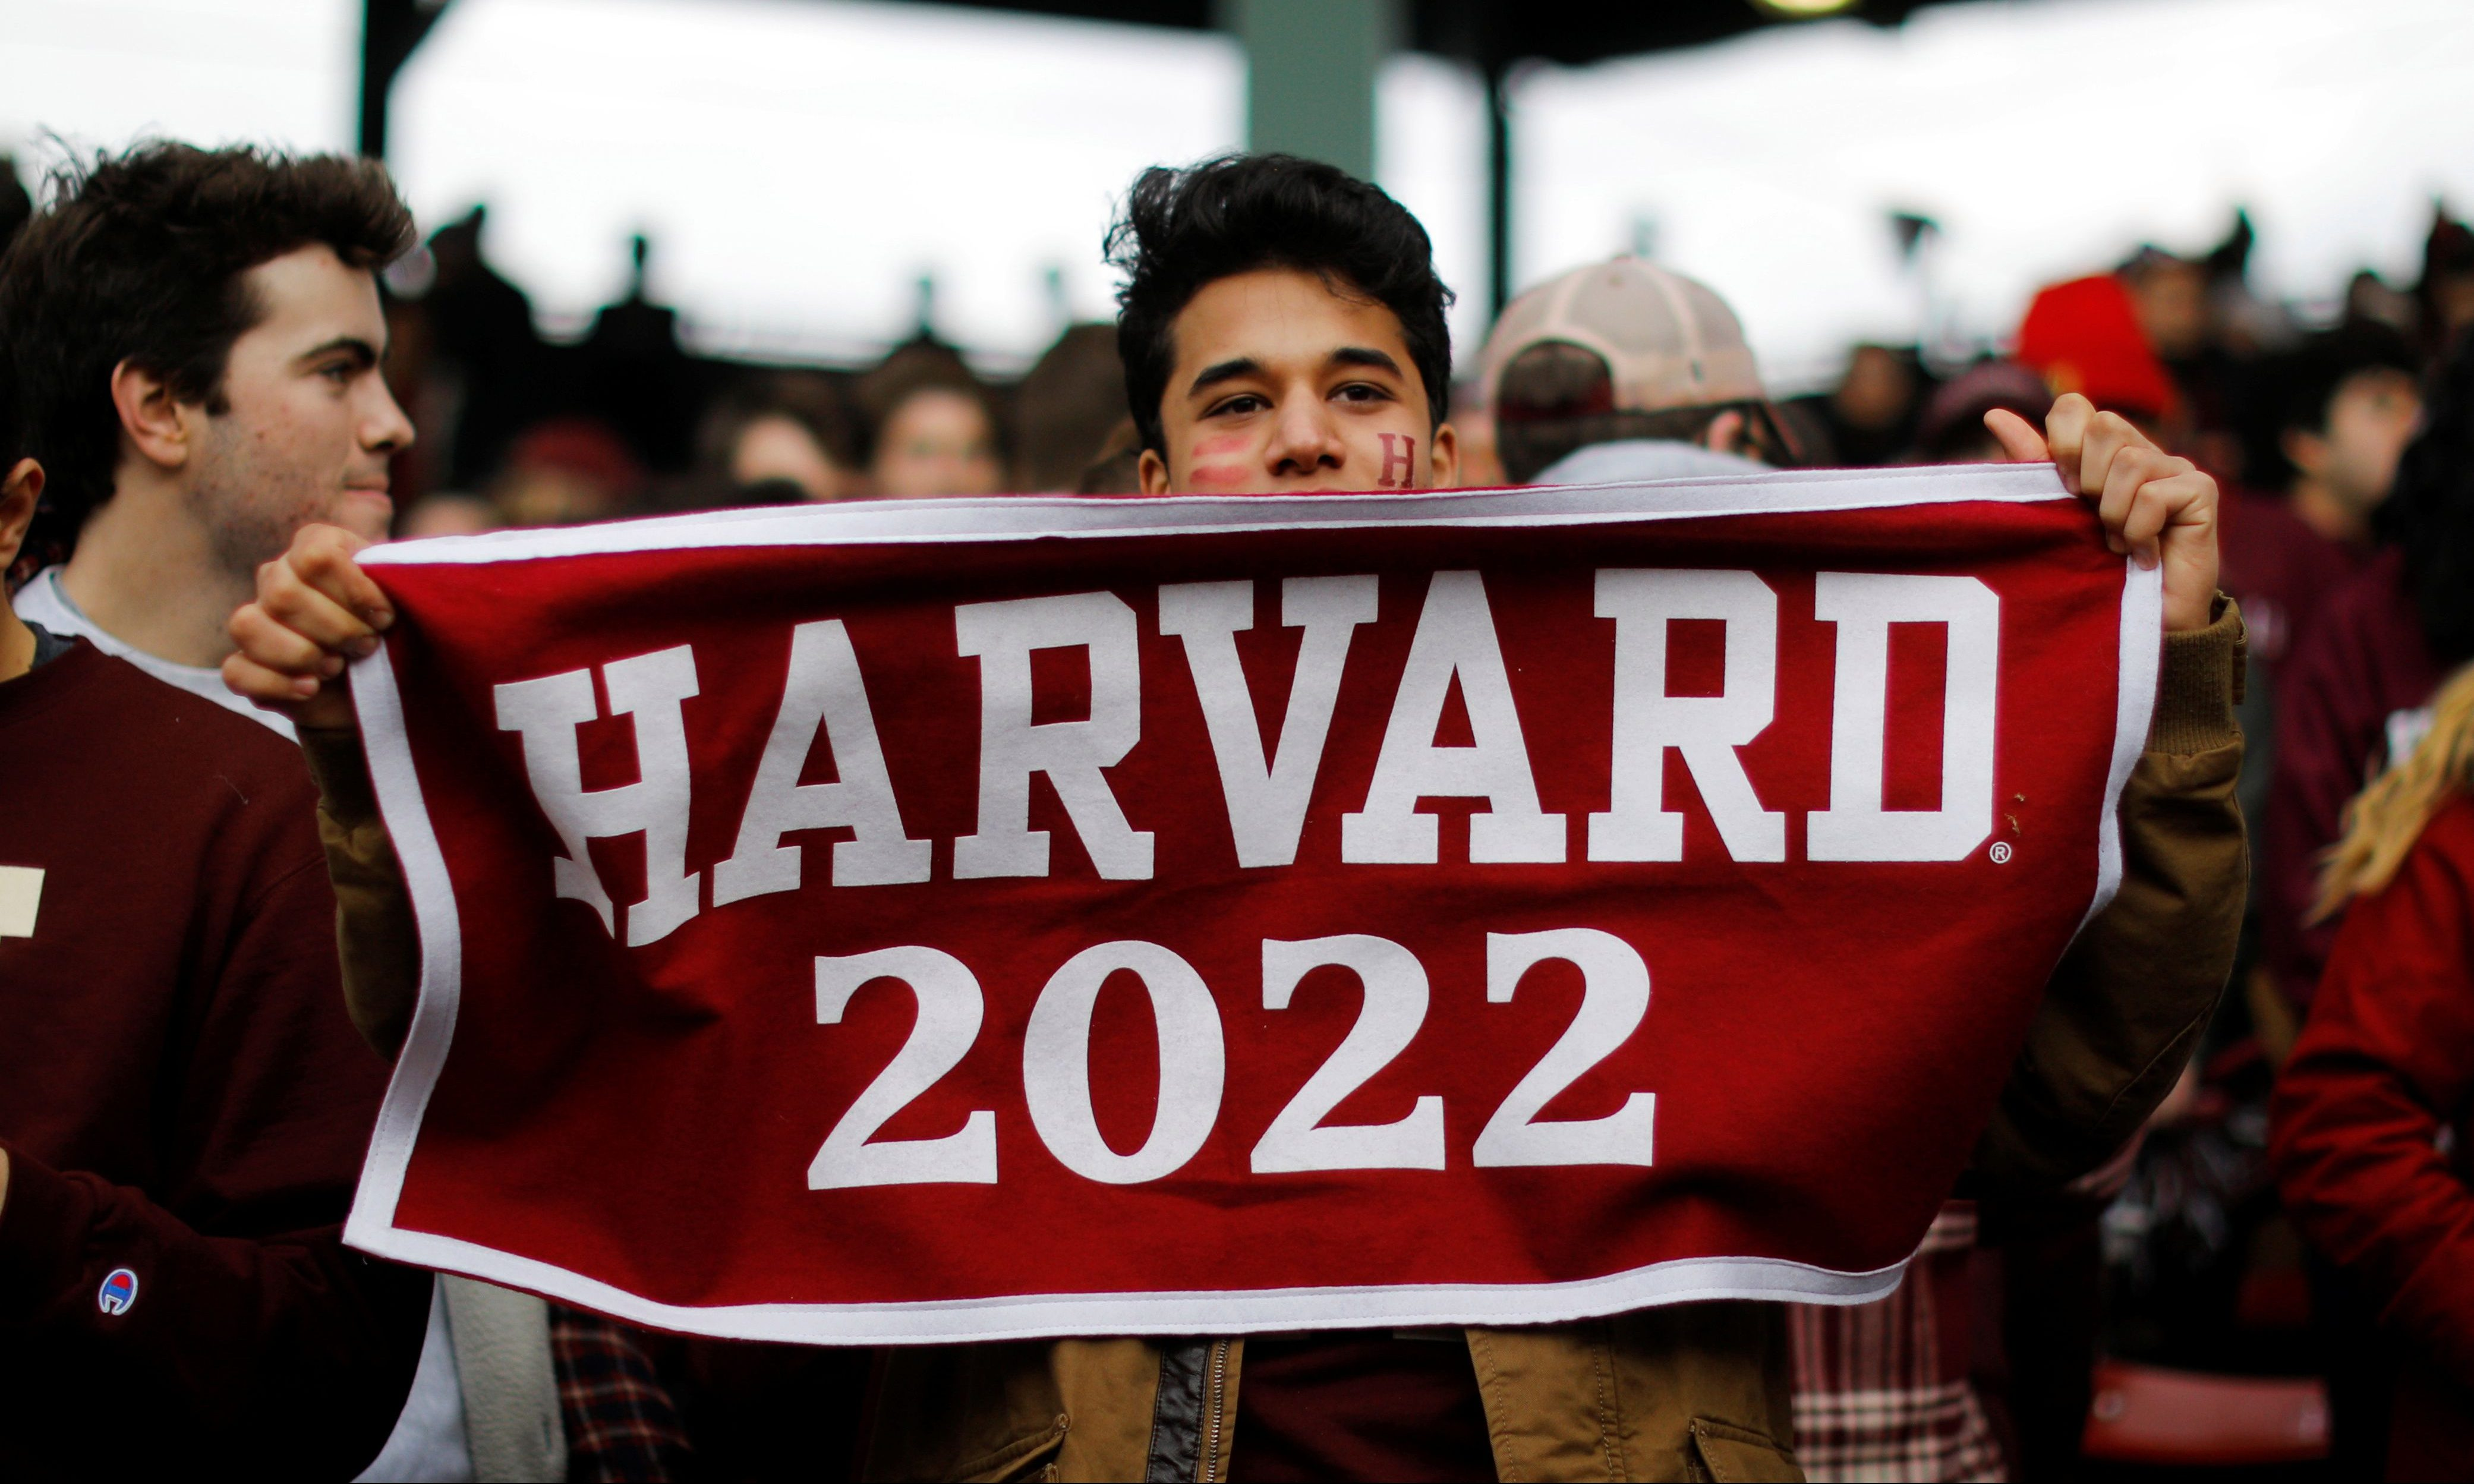 """A Harvard University student cheers during the 135th playing of """"The Game"""" against Yale University, at Fenway Park in Boston, Massachusetts, U.S., November 17, 2018. REUTERS/Brian Snyder - RC140C5D1500"""